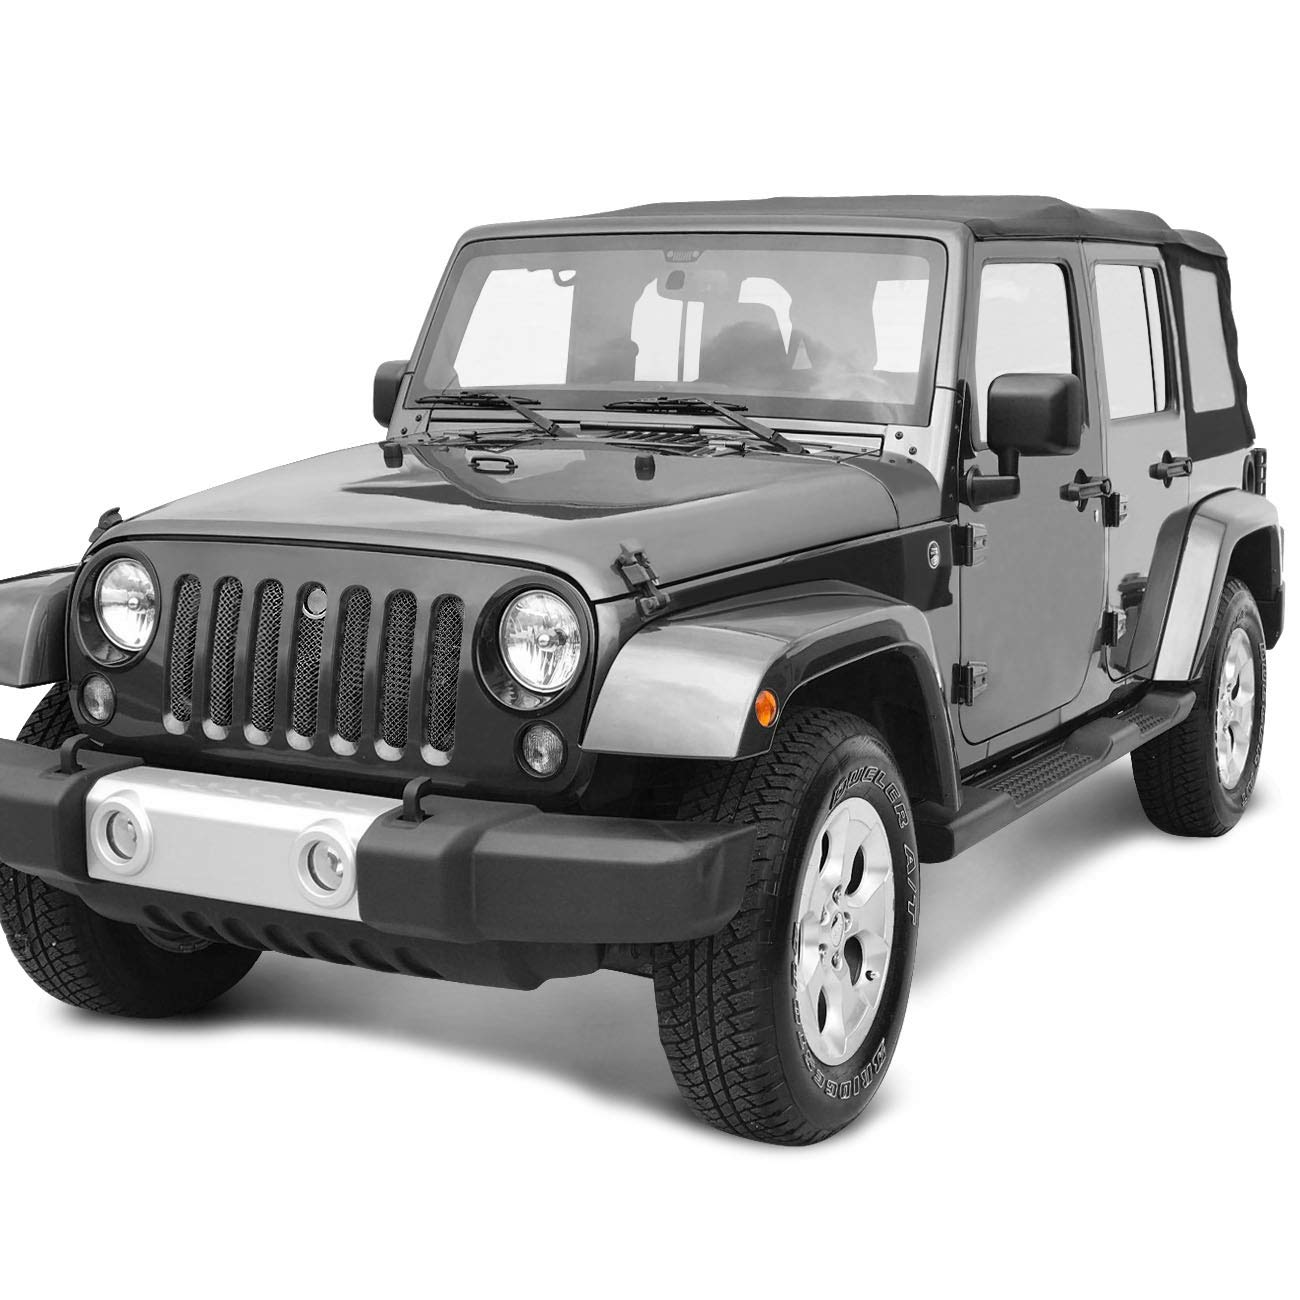 ICARS 3D Front Mesh Grill Inserts Grille Bug Net with Key Hood Lock for 2007-2018 Jeep Wrangler JK JKU Accessories /& Unlimited Rubicon Sahara